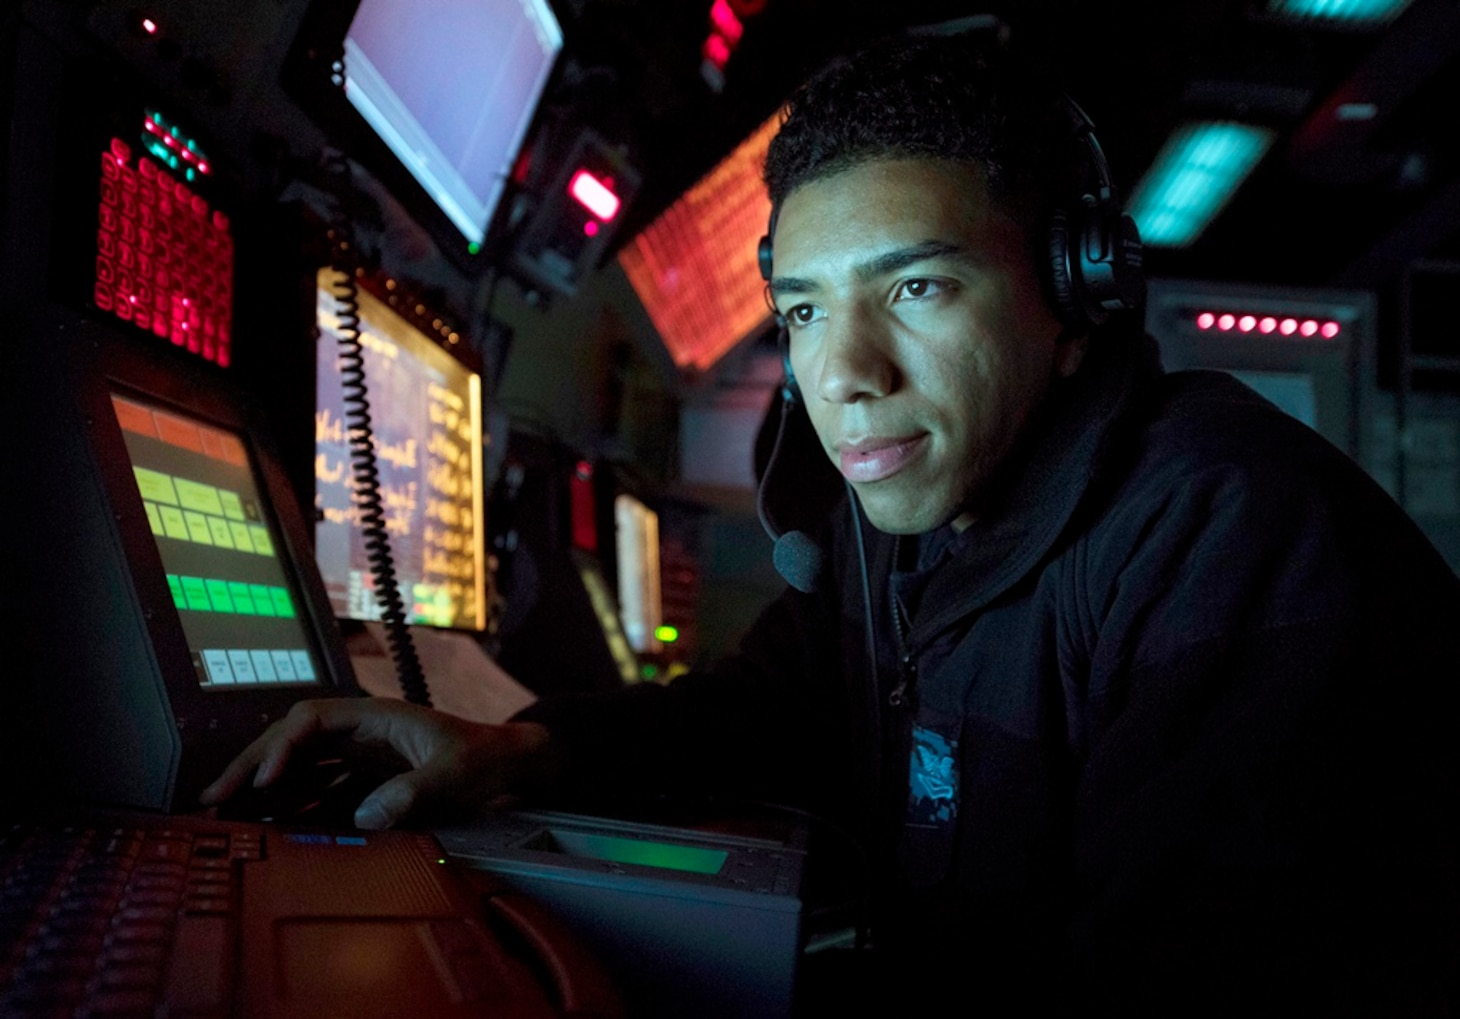 IMAGE: 170130-N-PP996-057 (Jan. 30, 2017) Cryptologic Technician (Technical) 2nd Class Jonathan Morel, from Salem, Massachusetts, uses a radar tracking system to track surface contacts aboard Arleigh Burke-class guided-missile destroyer USS Michael Murphy (DDG 112). Michael Murphy is on a regularly scheduled Western Pacific deployment with the Carl Vinson Carrier Strike Group as part of the U.S. Pacific Fleet-led initiative to extend the command and control functions of U.S. 3rd Fleet. U.S. Navy aircraft carrier strike groups have patrolled the Indo-Asia-Pacific regularly and routinely for more than 70 years. (U.S. Navy photo by Mass Communication Specialist 3rd Class Danny Kelley/Released)